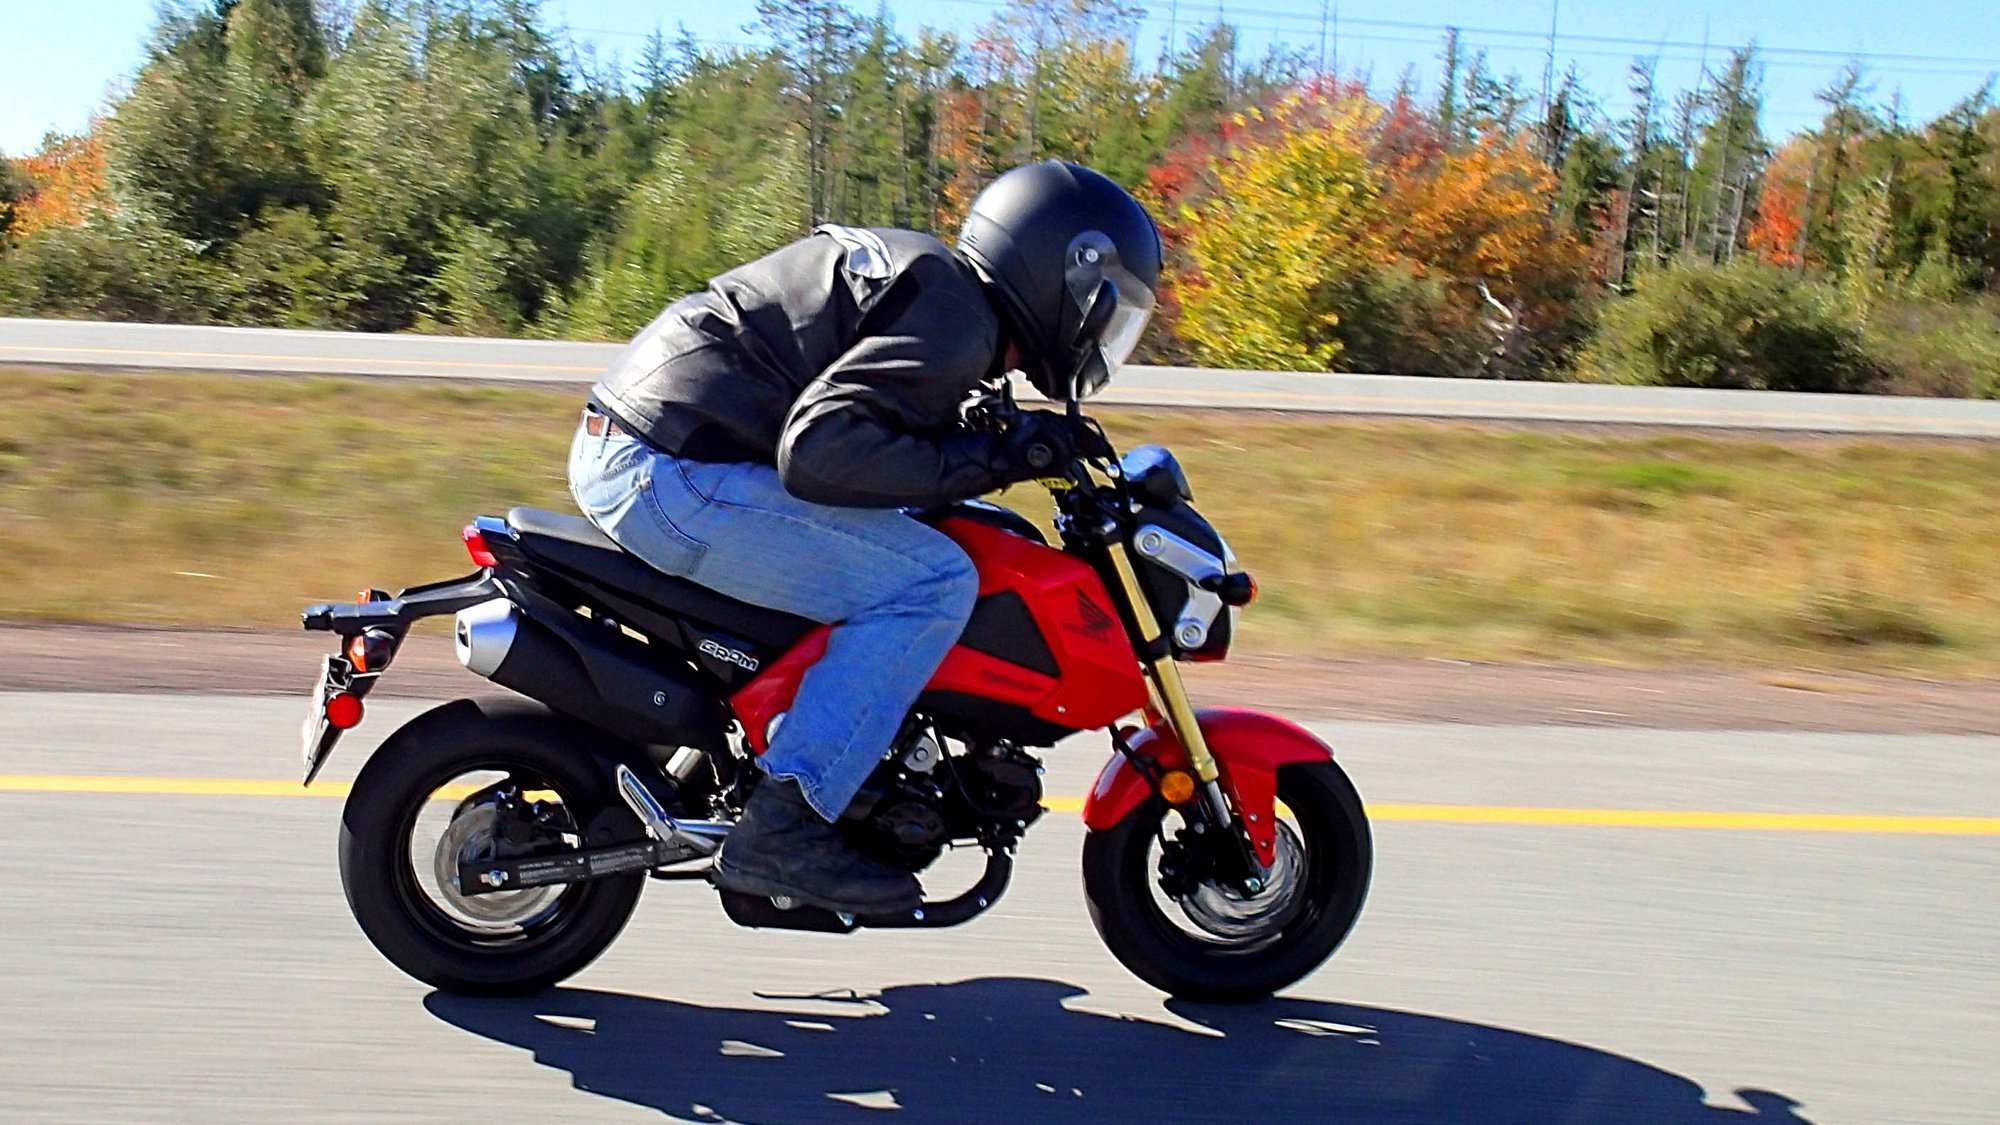 56 Great 2020 Honda Grom Top Speed Pricing for 2020 Honda Grom Top Speed